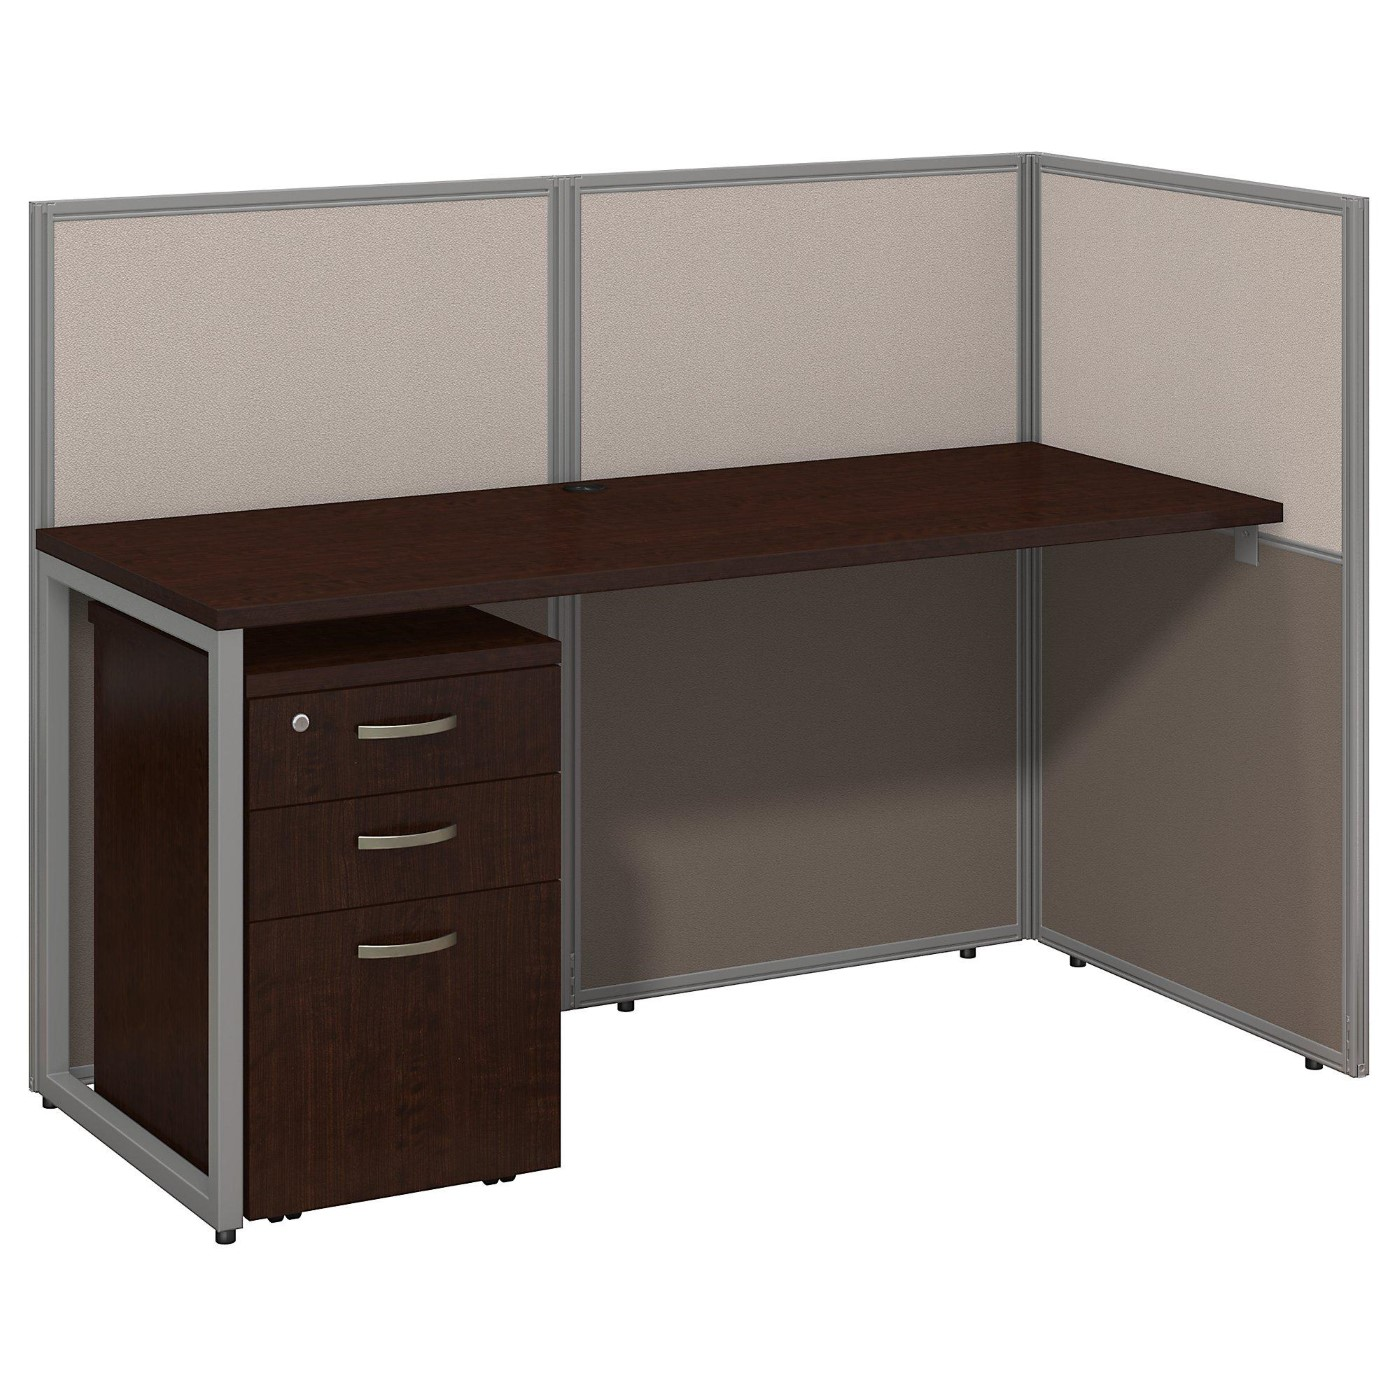 BUSH BUSINESS FURNITURE EASY OFFICE 60W STRAIGHT DESK OPEN OFFICE WITH MOBILE FILE CABINET. FREE SHIPPING  VIDEO BELOW.  SALE DEDUCT 10% MORE ENTER '10percent' IN COUPON CODE BOX WHILE CHECKING OUT. ENDS 5-31-20.